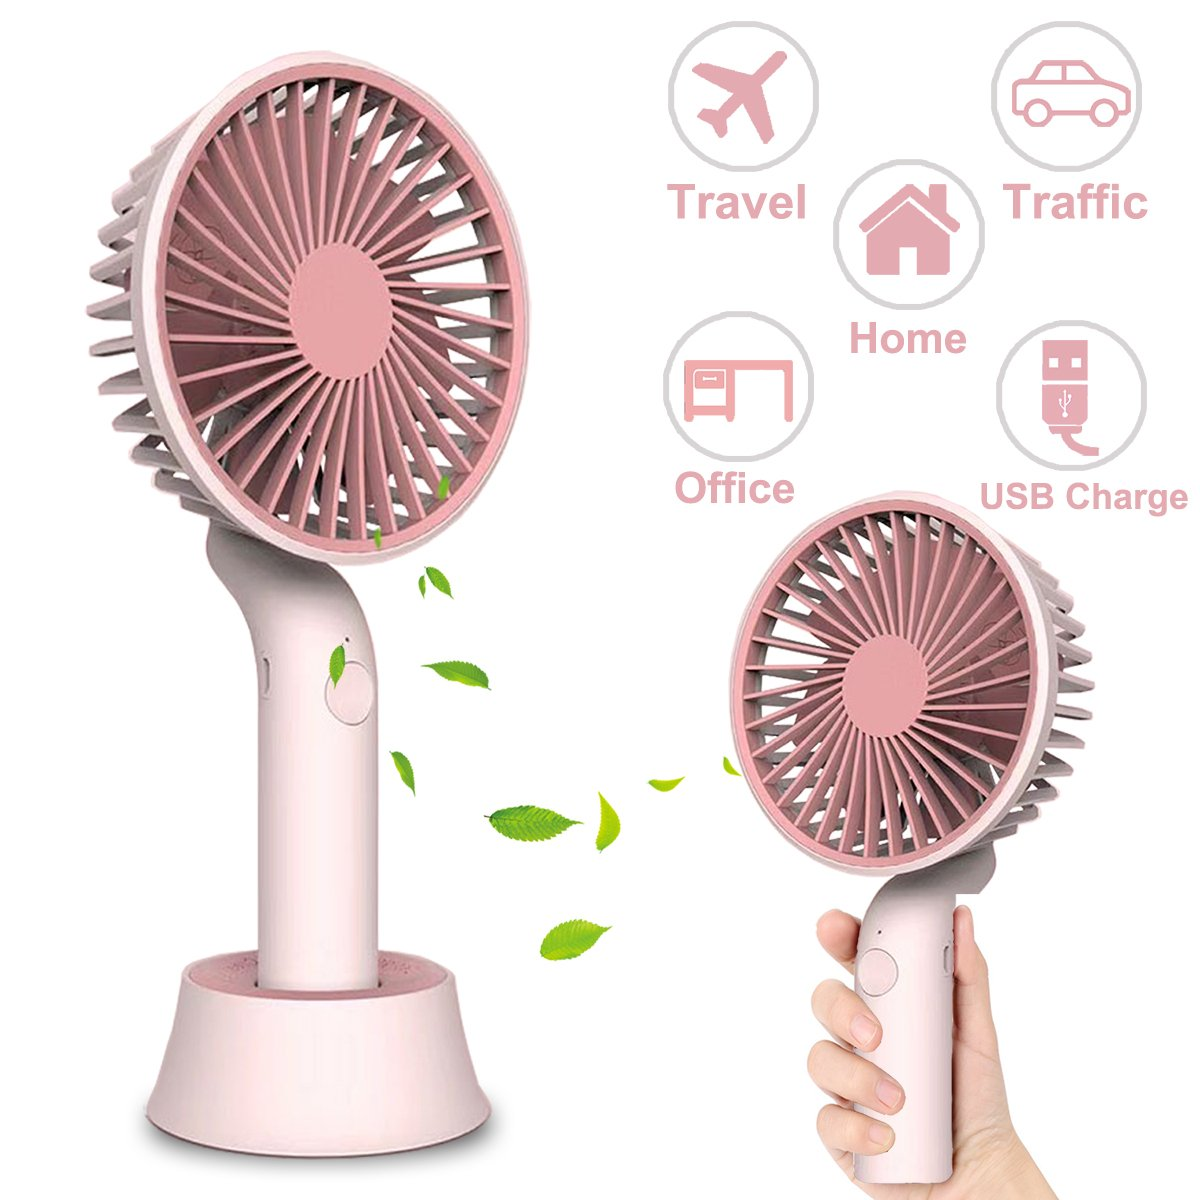 Qiwoo Mini Fan Battery Operated Portable Fan with Stand Handheld Personal USB Rechargeable Cool Fan with 3 Adjustable Speeds for Kids Women Men Table Desk Home Camping Travel Indoor Outdoor(Pink)